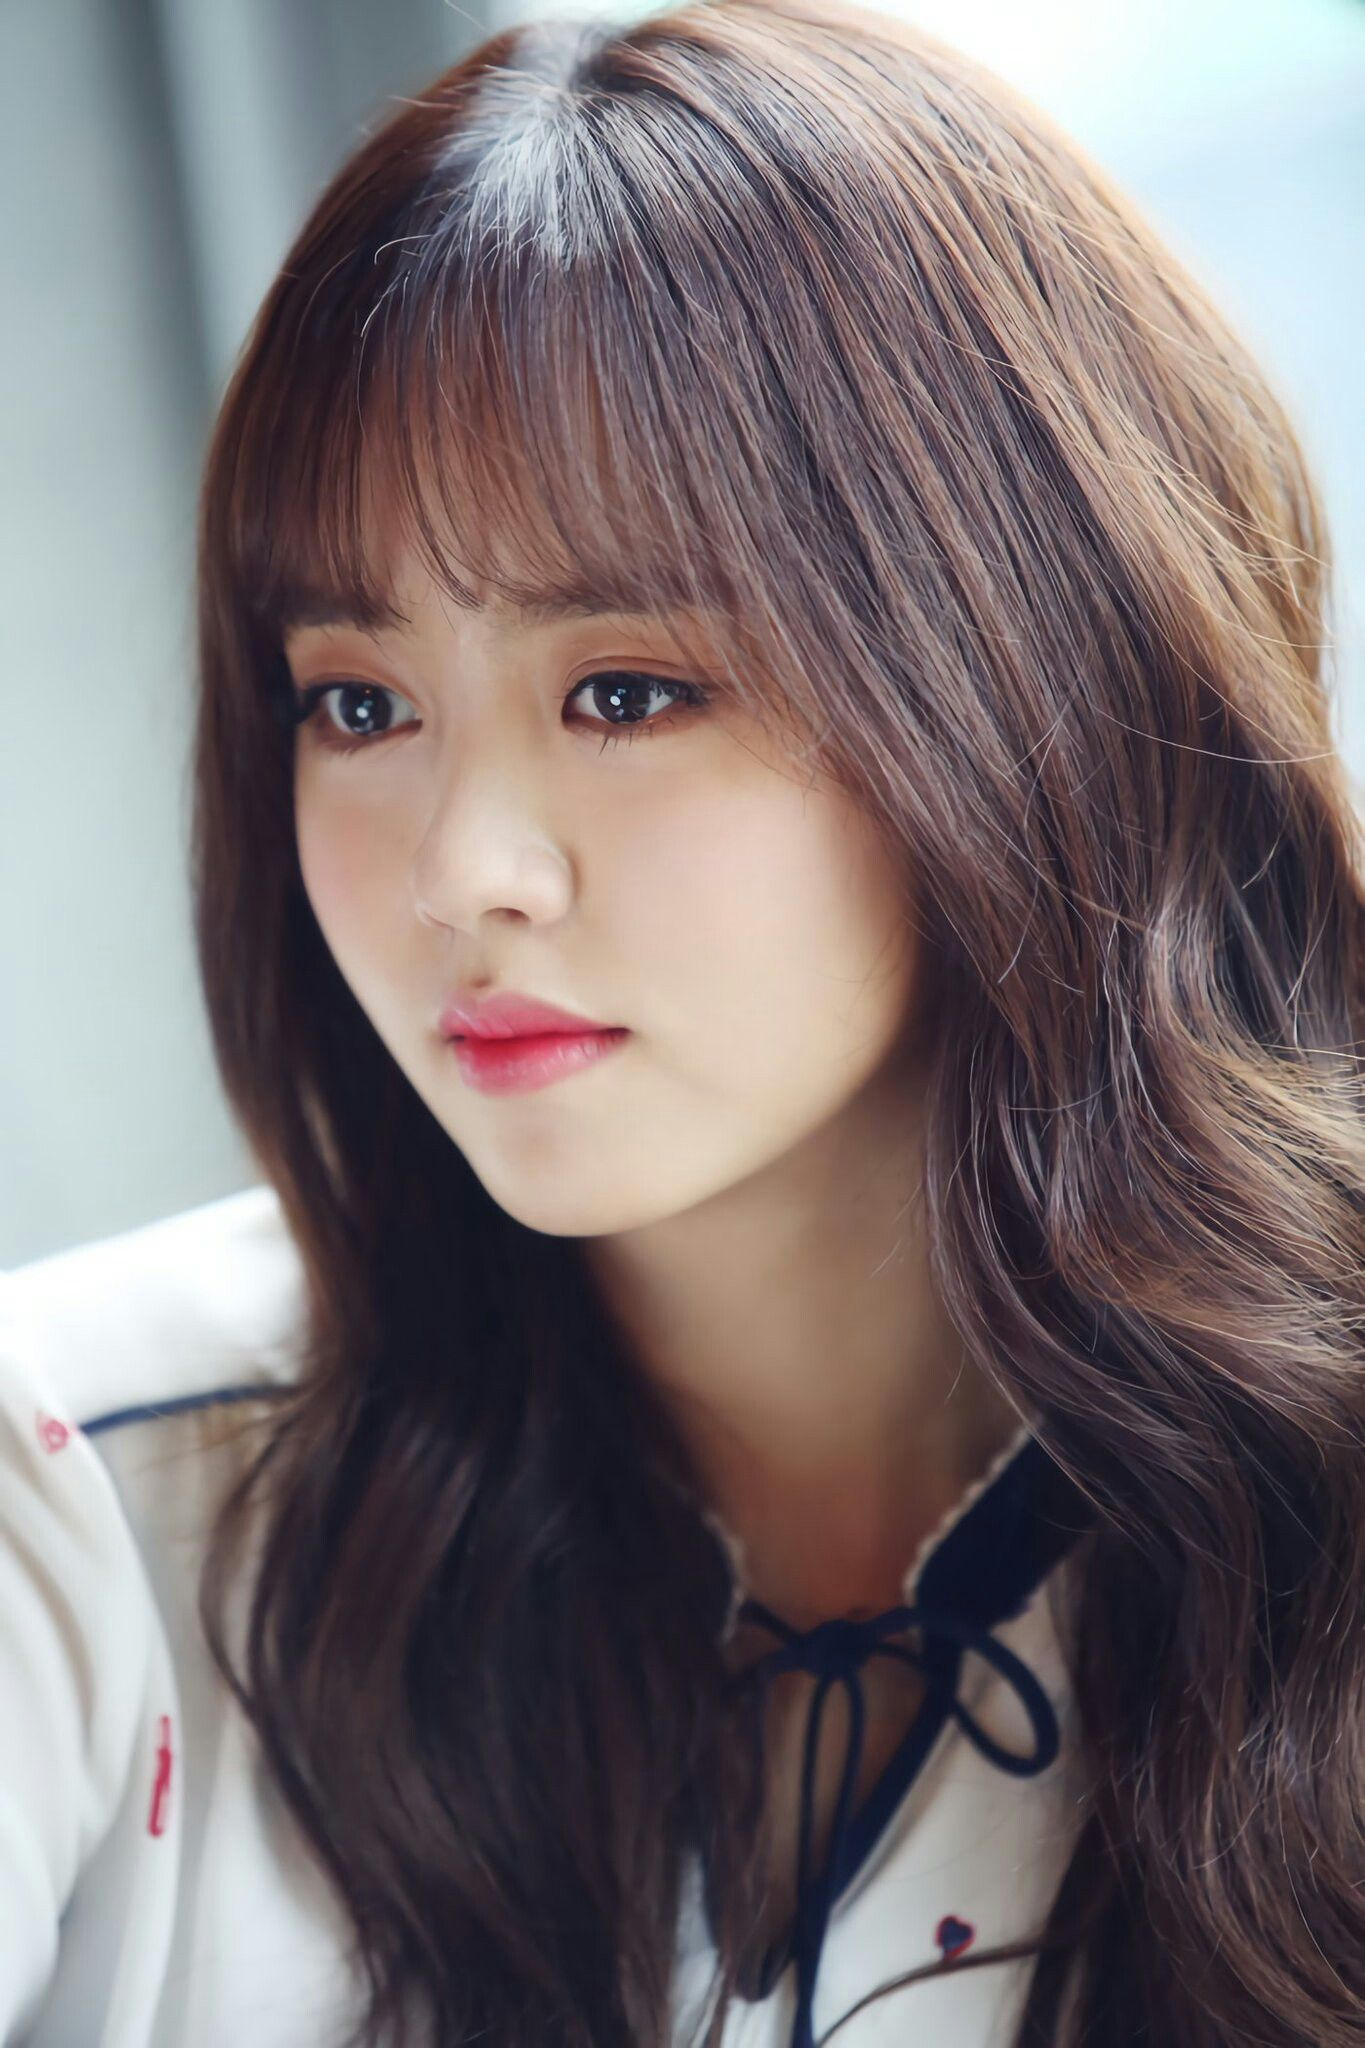 kim so hyun reunites i hear your voice writer dramabeans 446084954854788